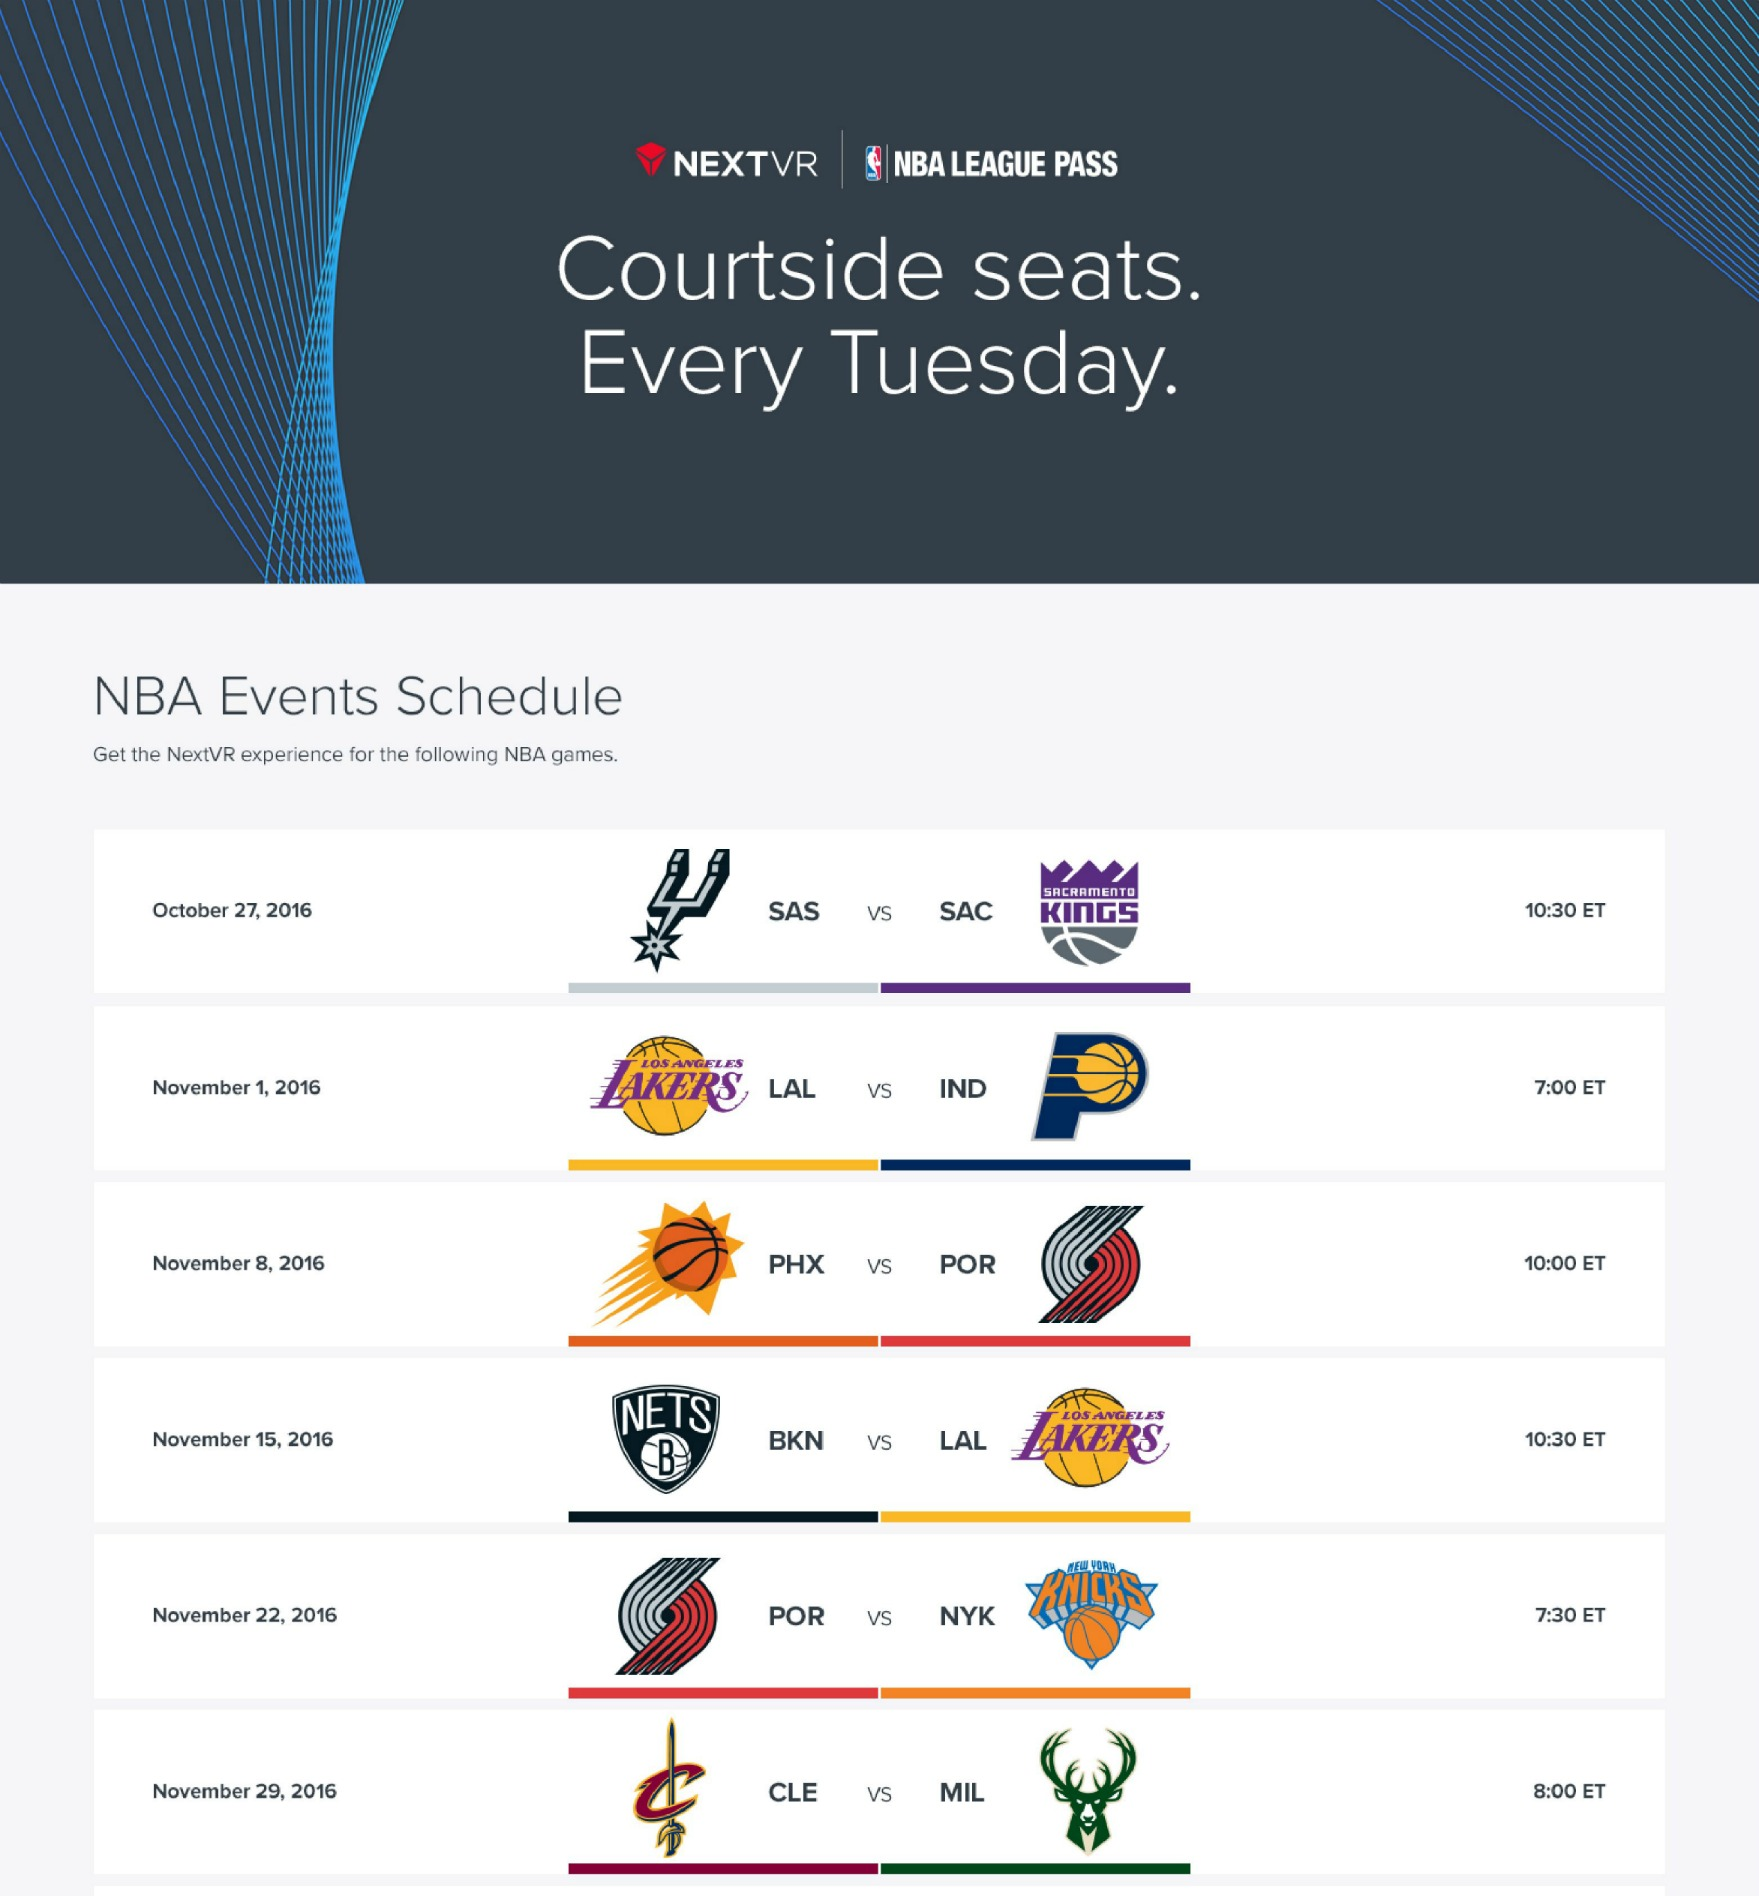 NextVR to Broadcast Over 20 Live NBA Games This Season, Coverage Starts Tonight